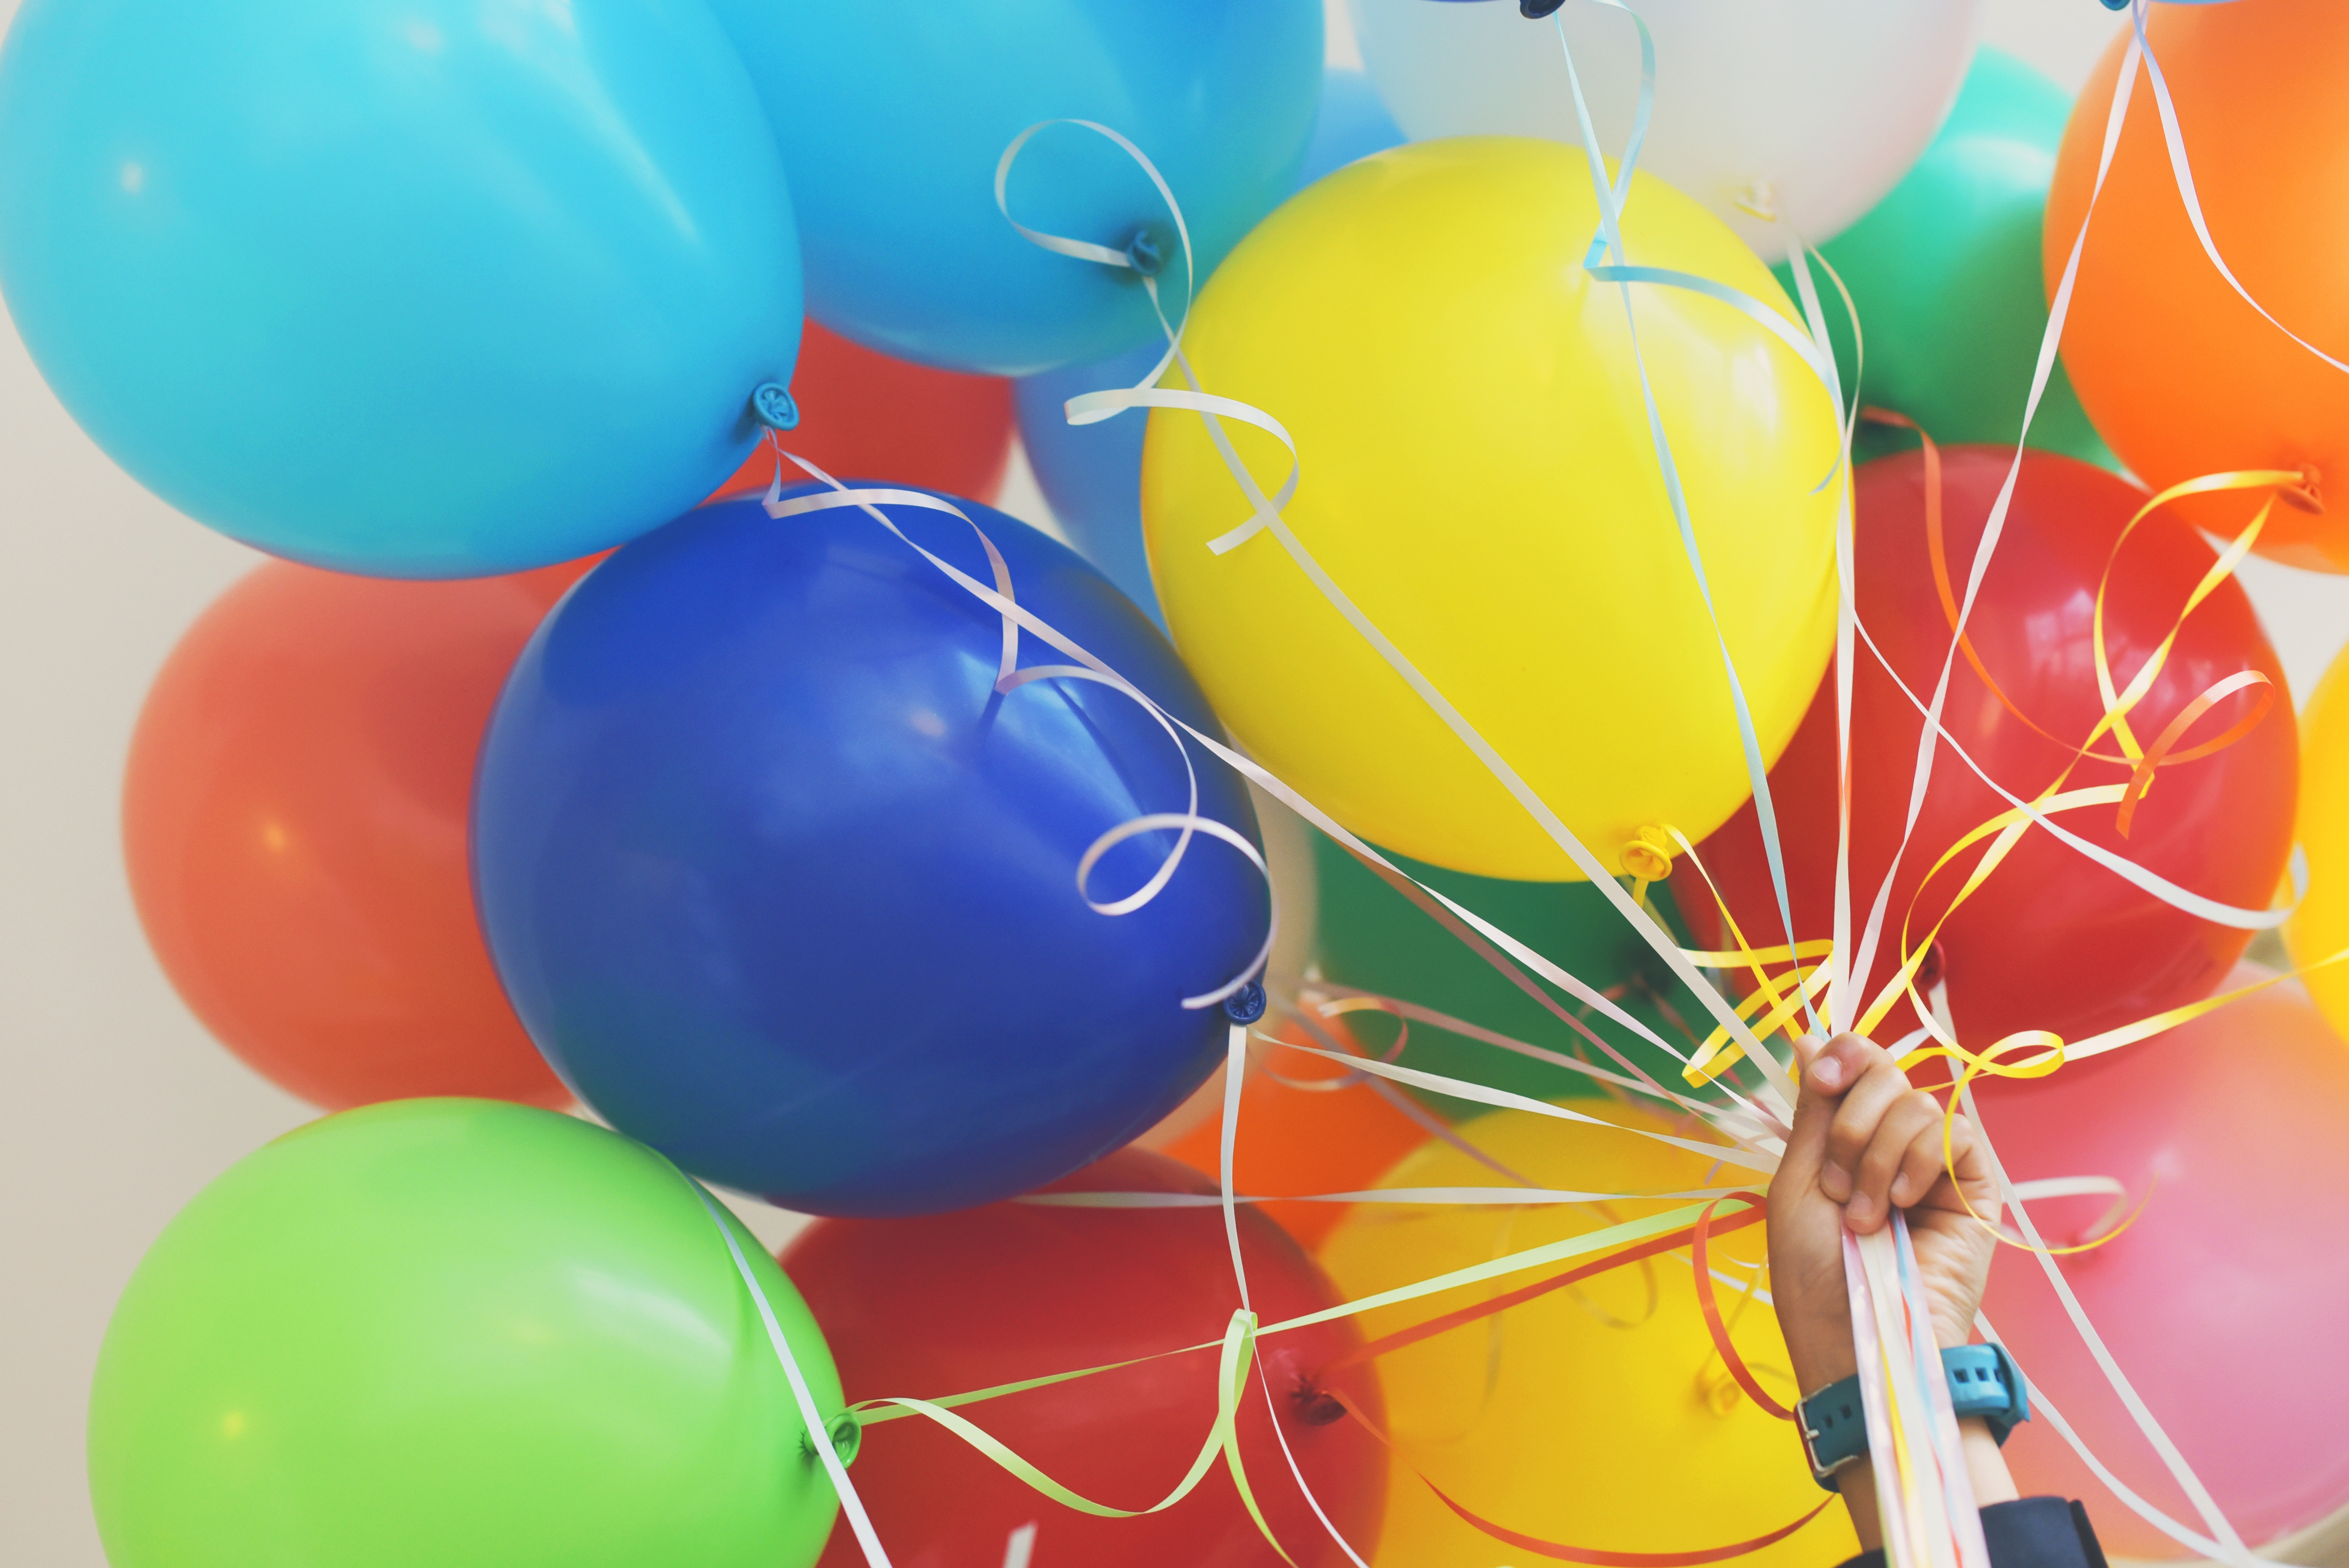 Image by Gaelle Marcel - a hand holding a bunch of balloons